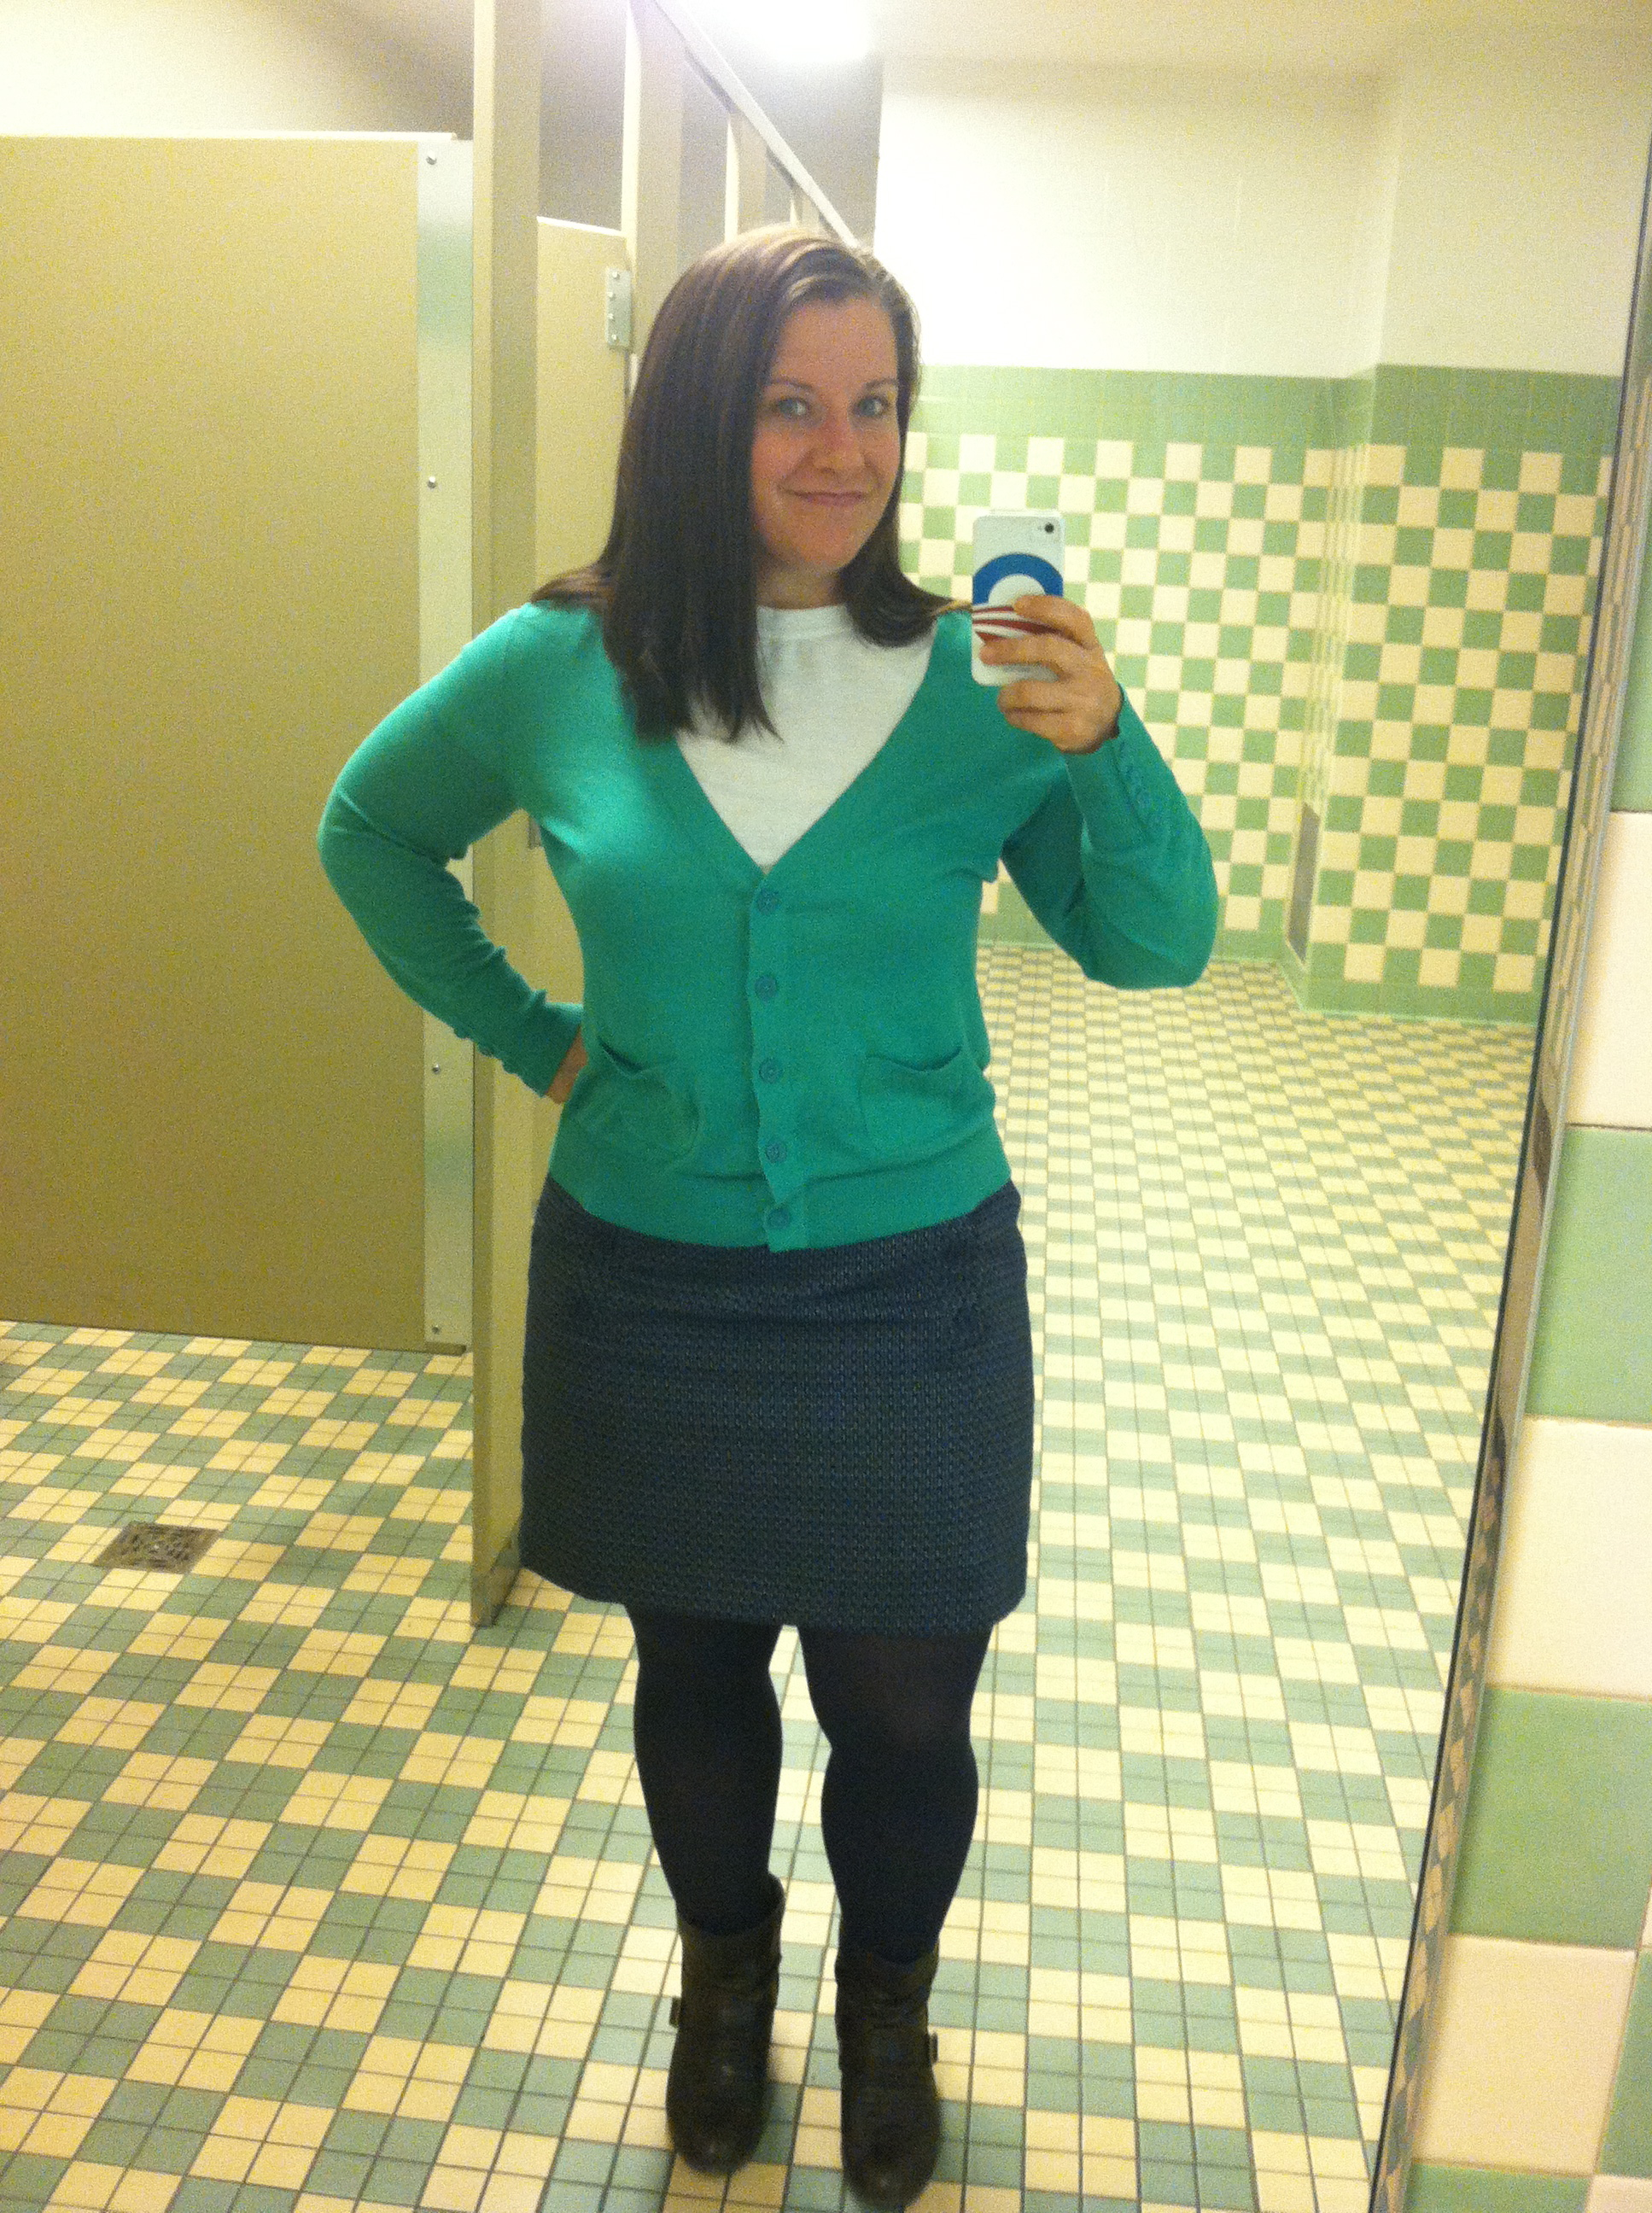 Navy textured skirt with buttons, white t-shirt, same turquoise cardigan as above (I'm MIXING, I'm MATCHING), navy tights. Also, short boots.